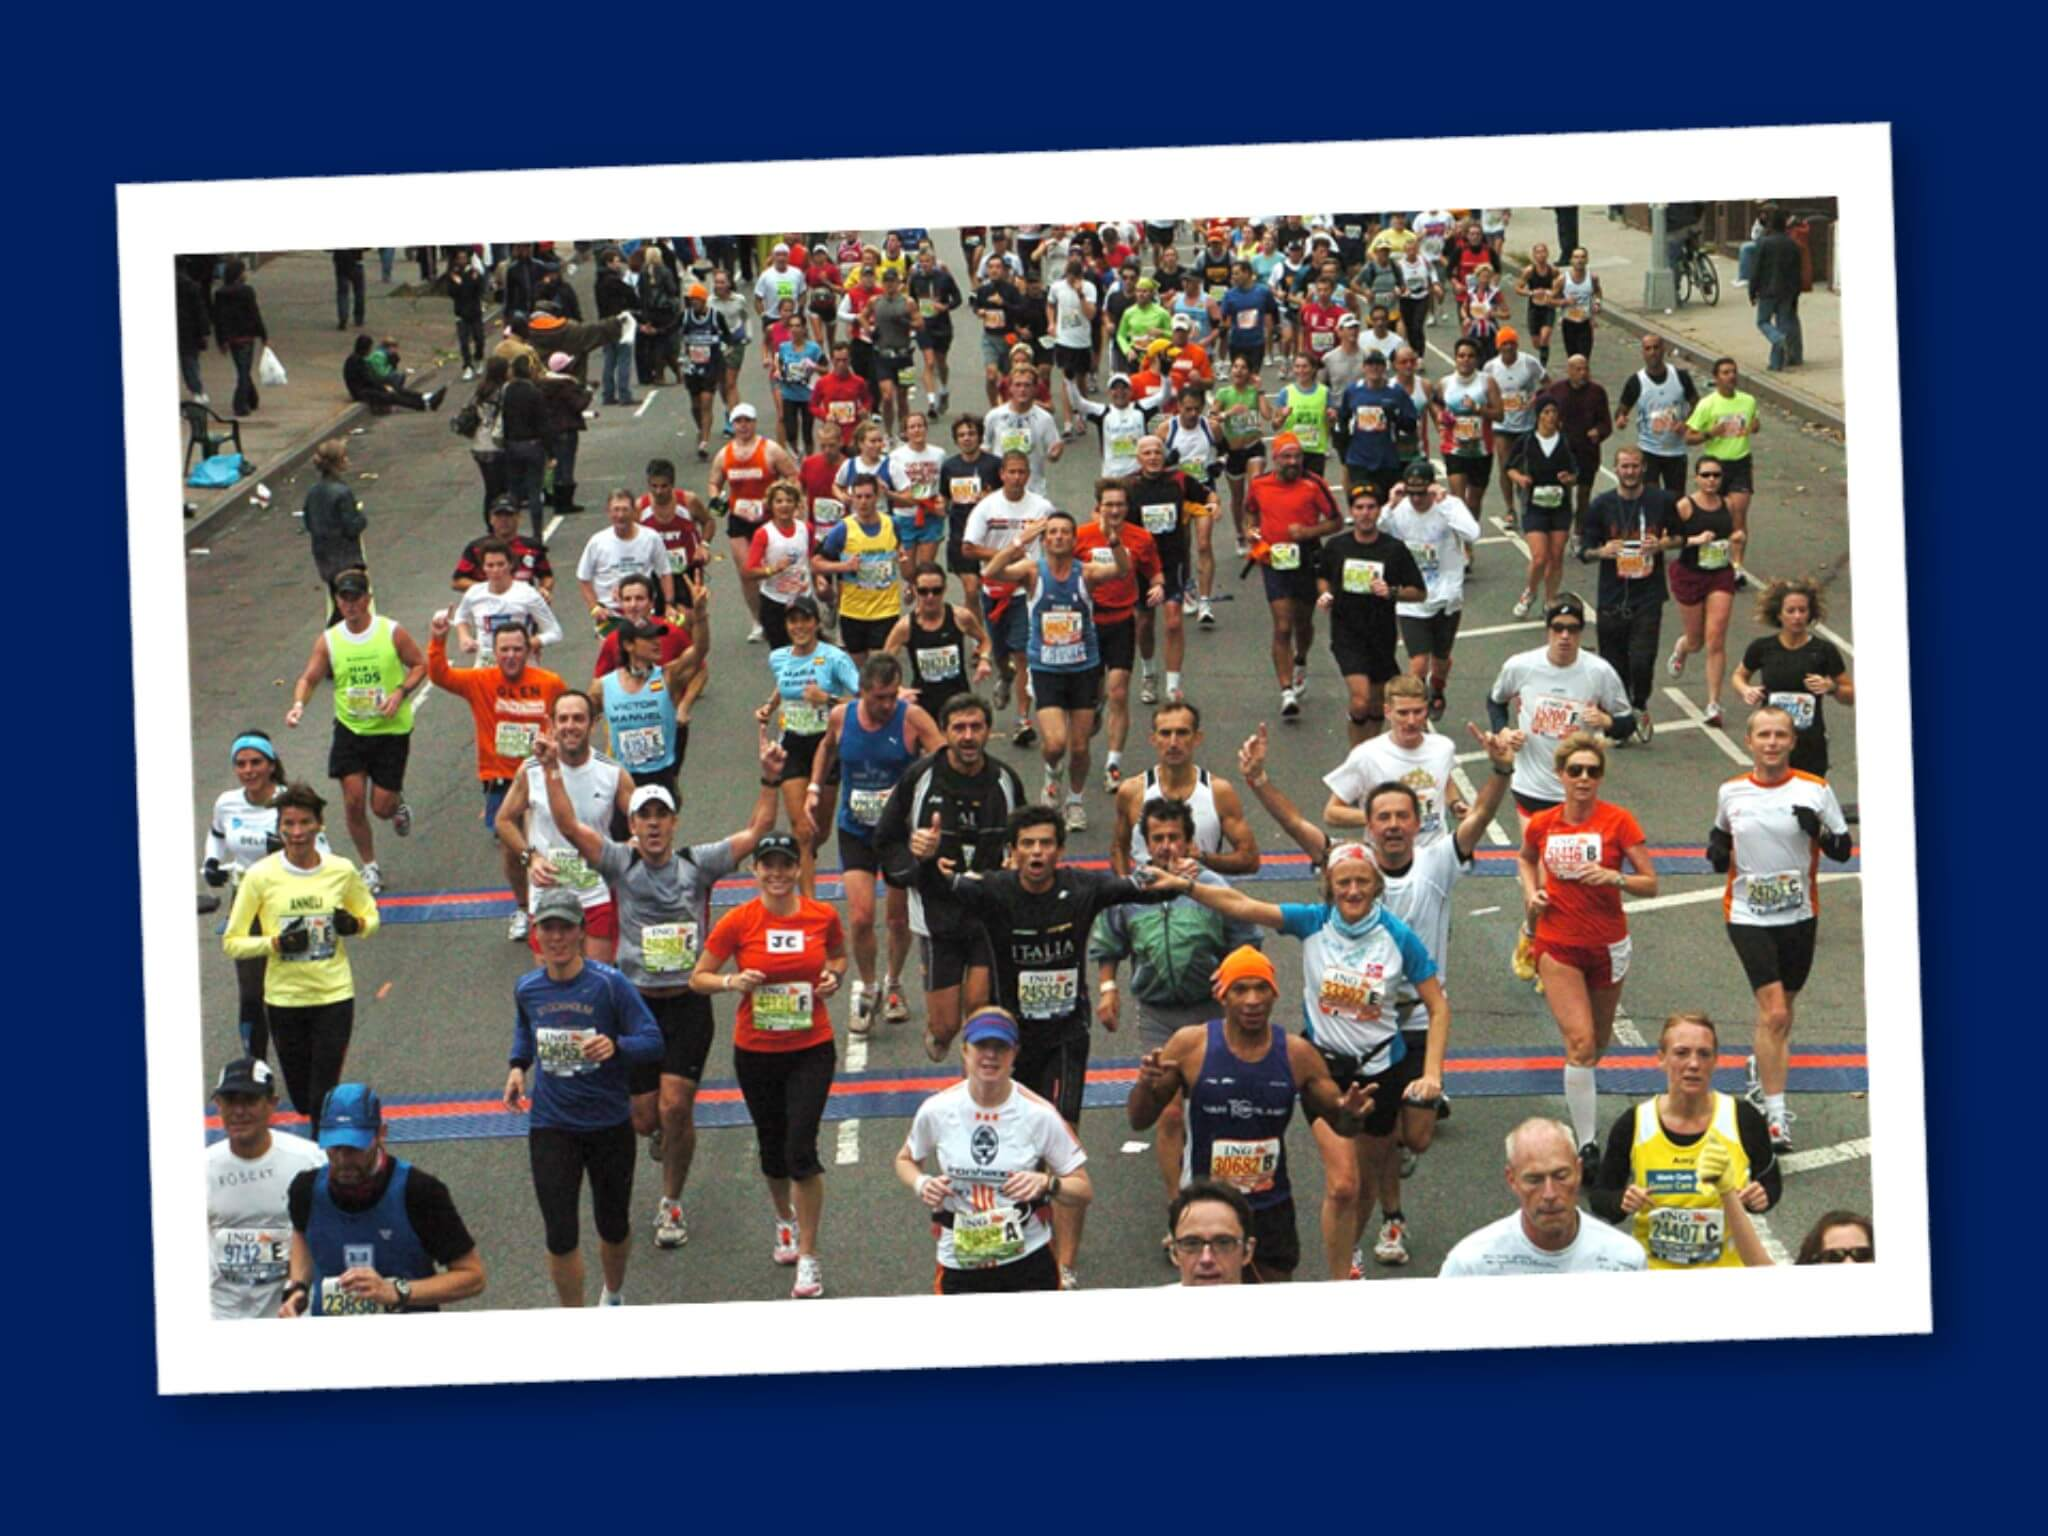 Maratona di New York 2019 come partecipare